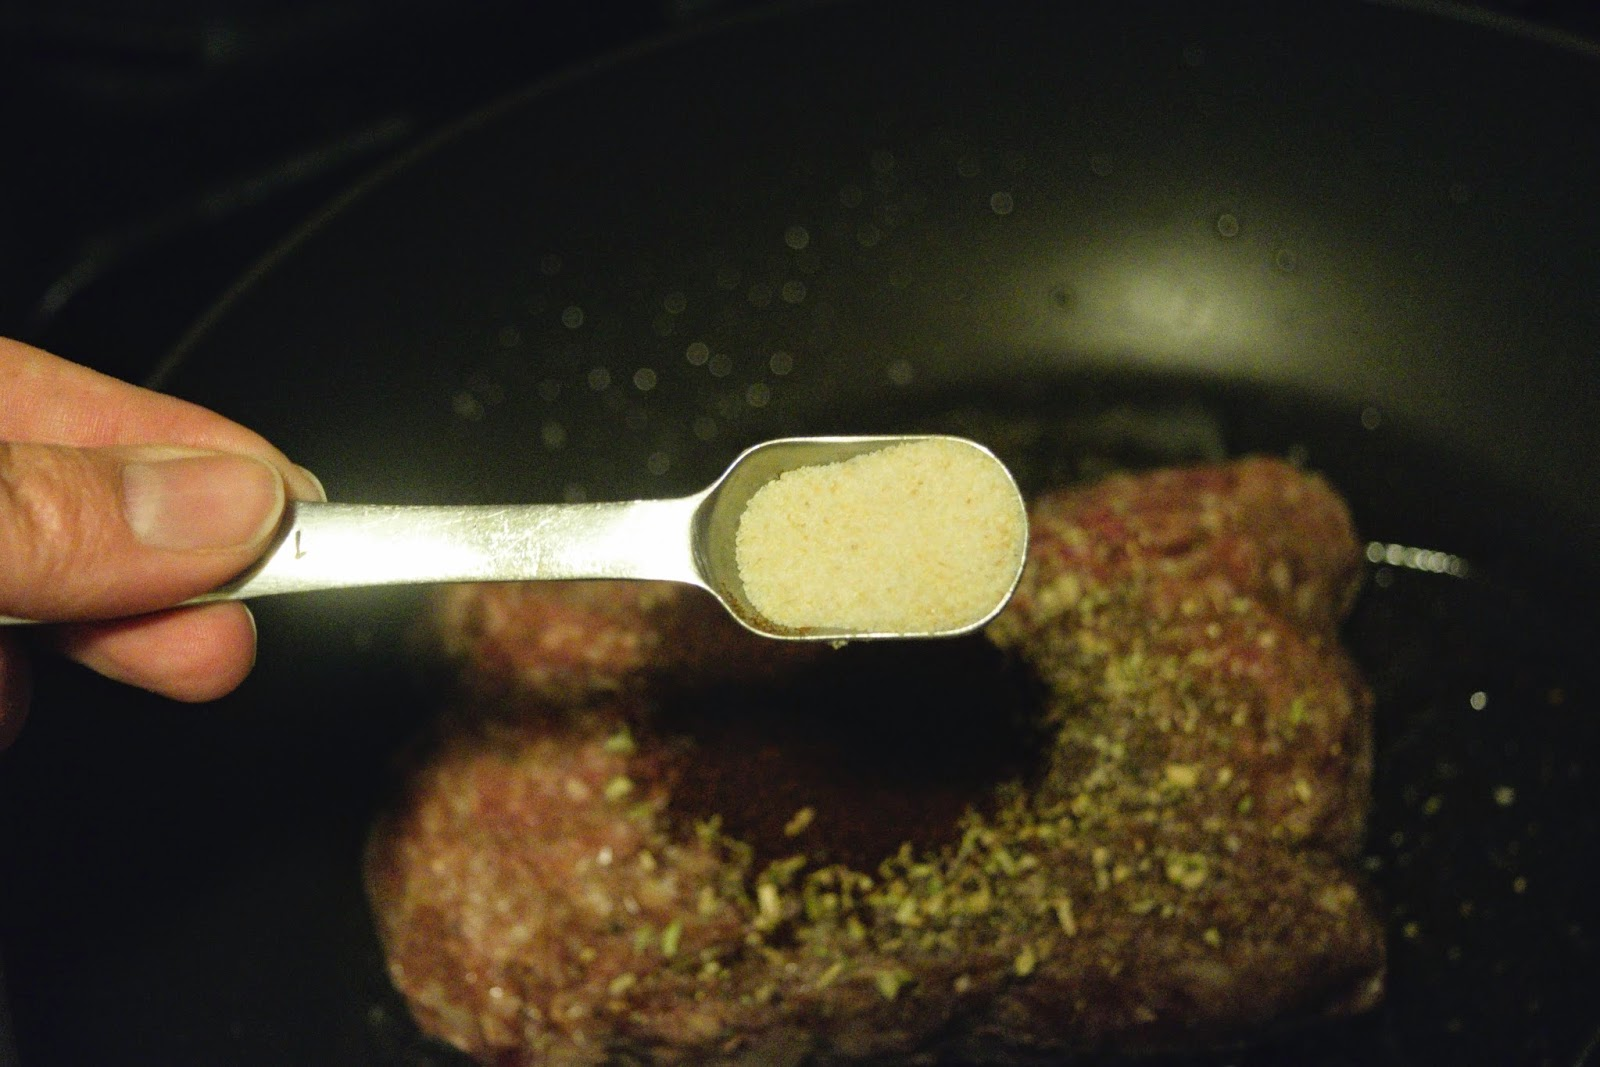 Onion powder being added to the ground beef in the pan.